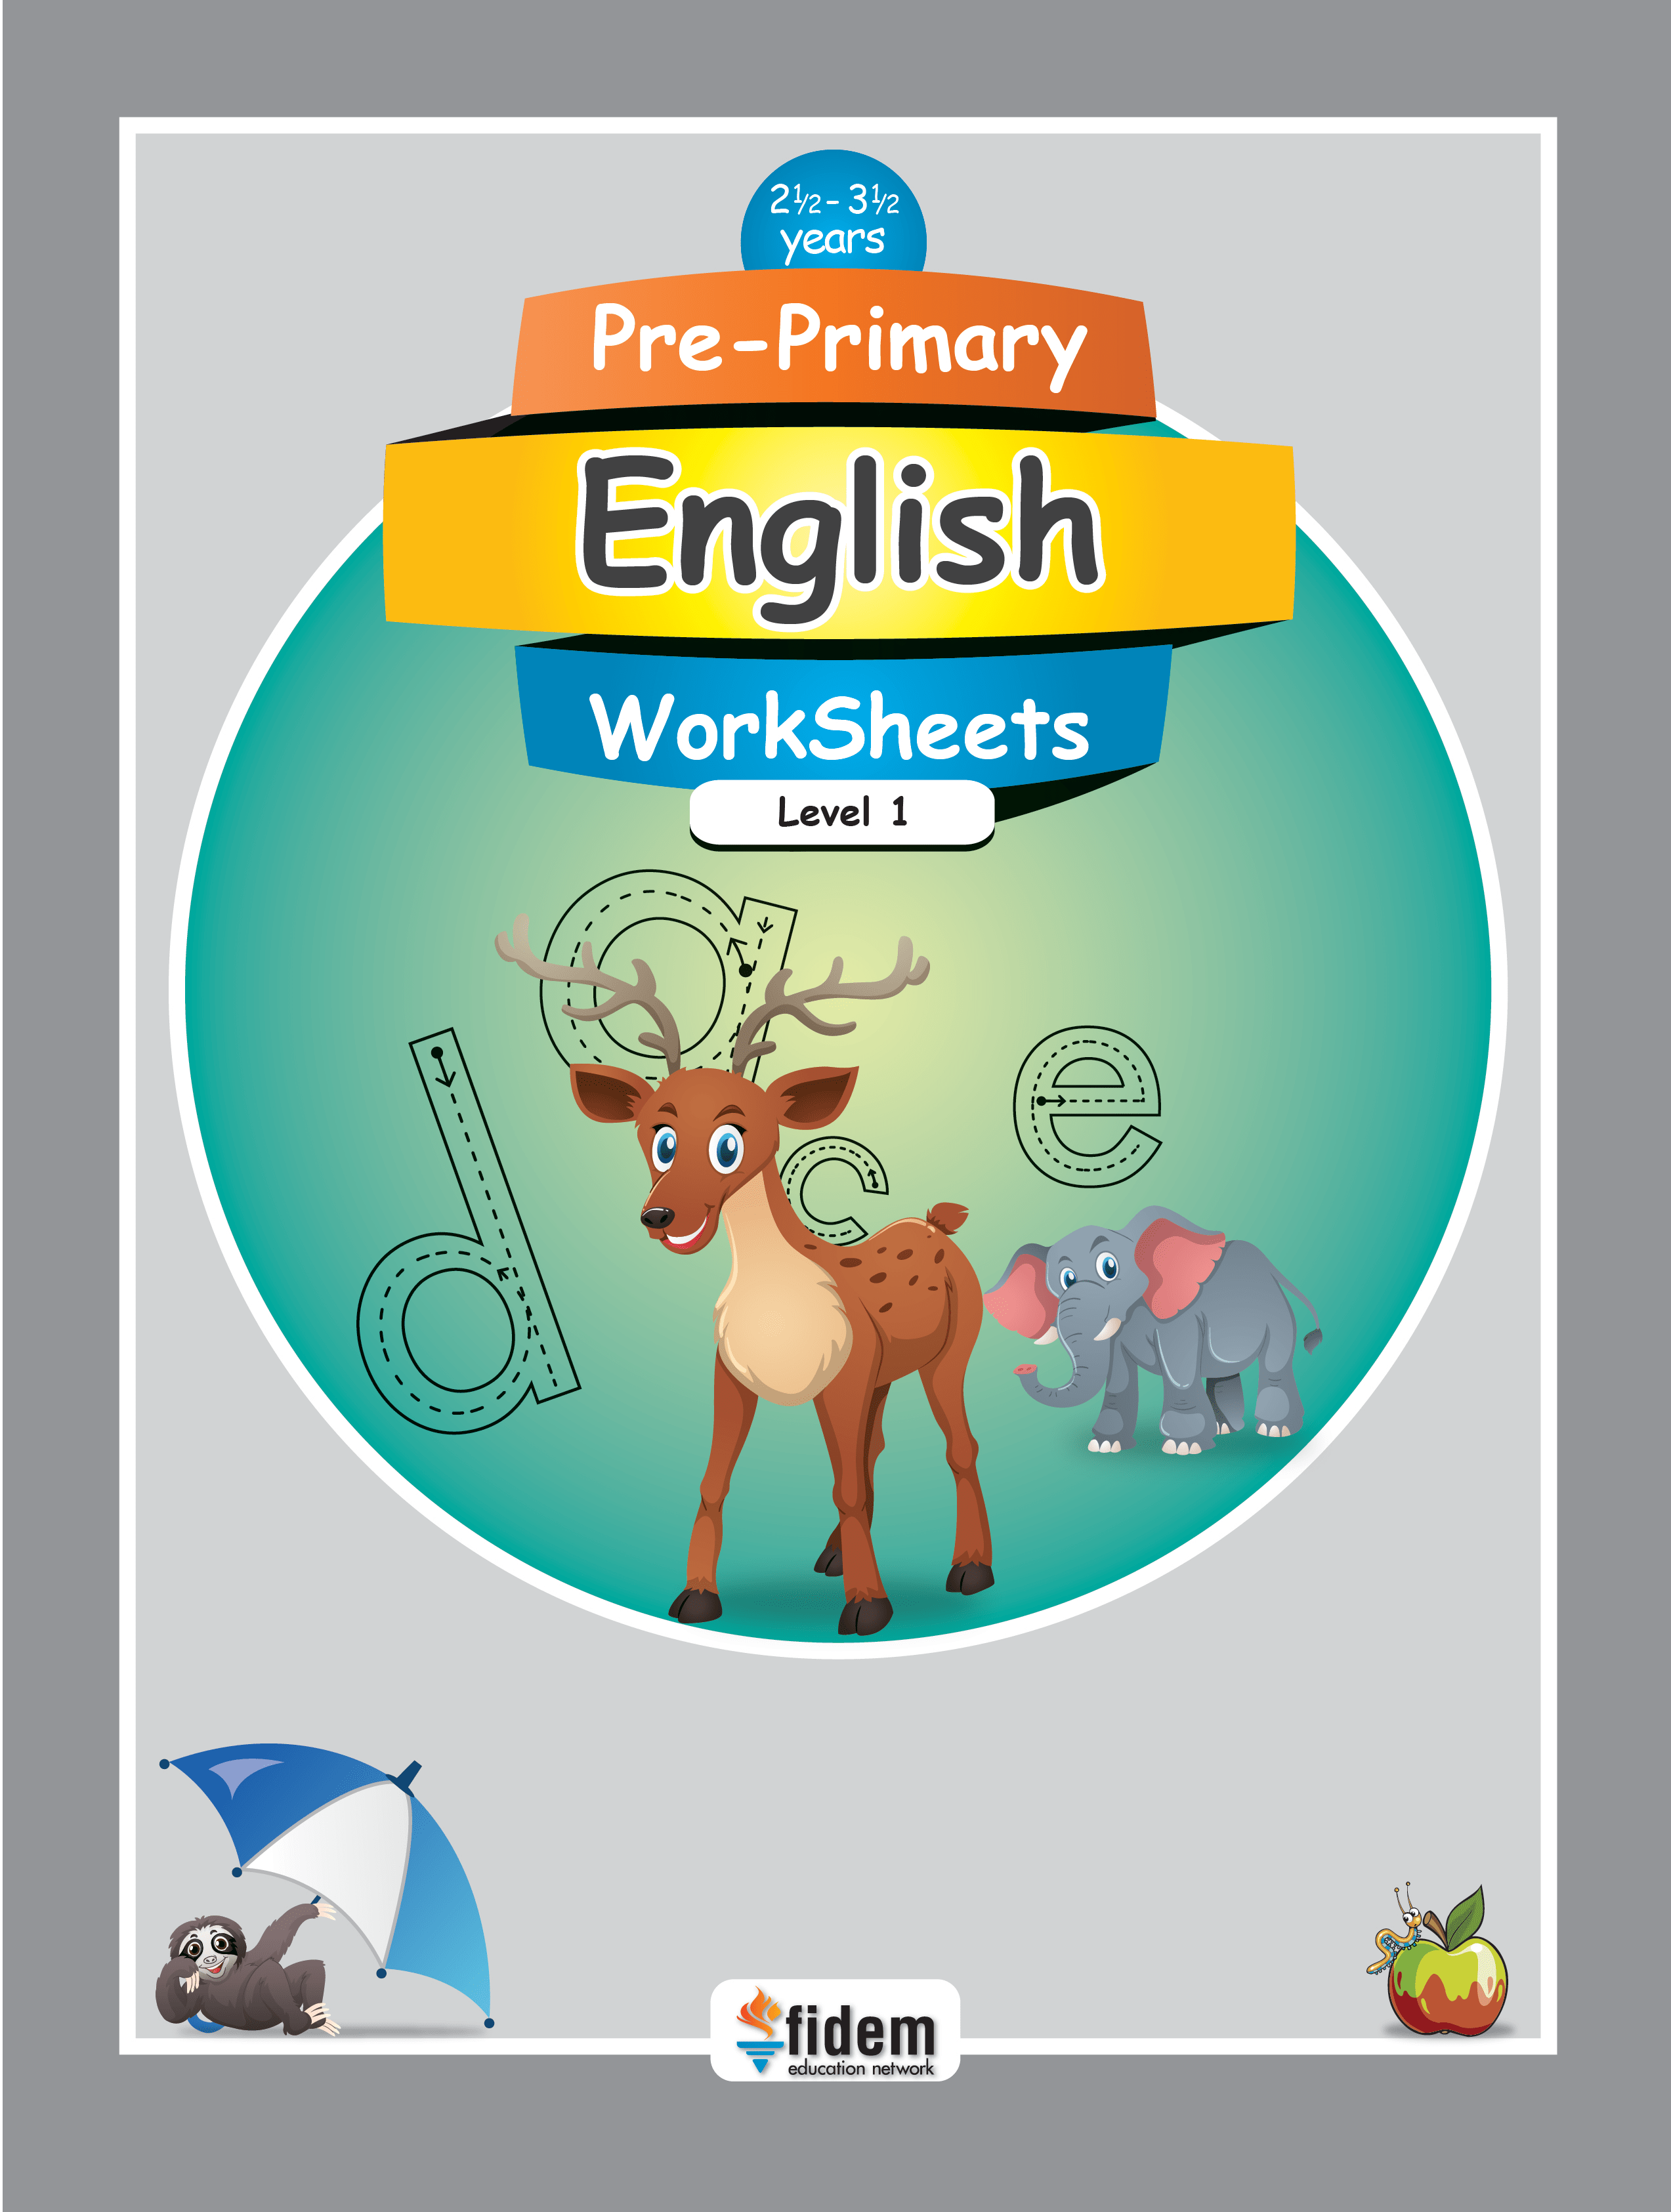 Pre Primary English Worksheets 1 Fidem Education Network